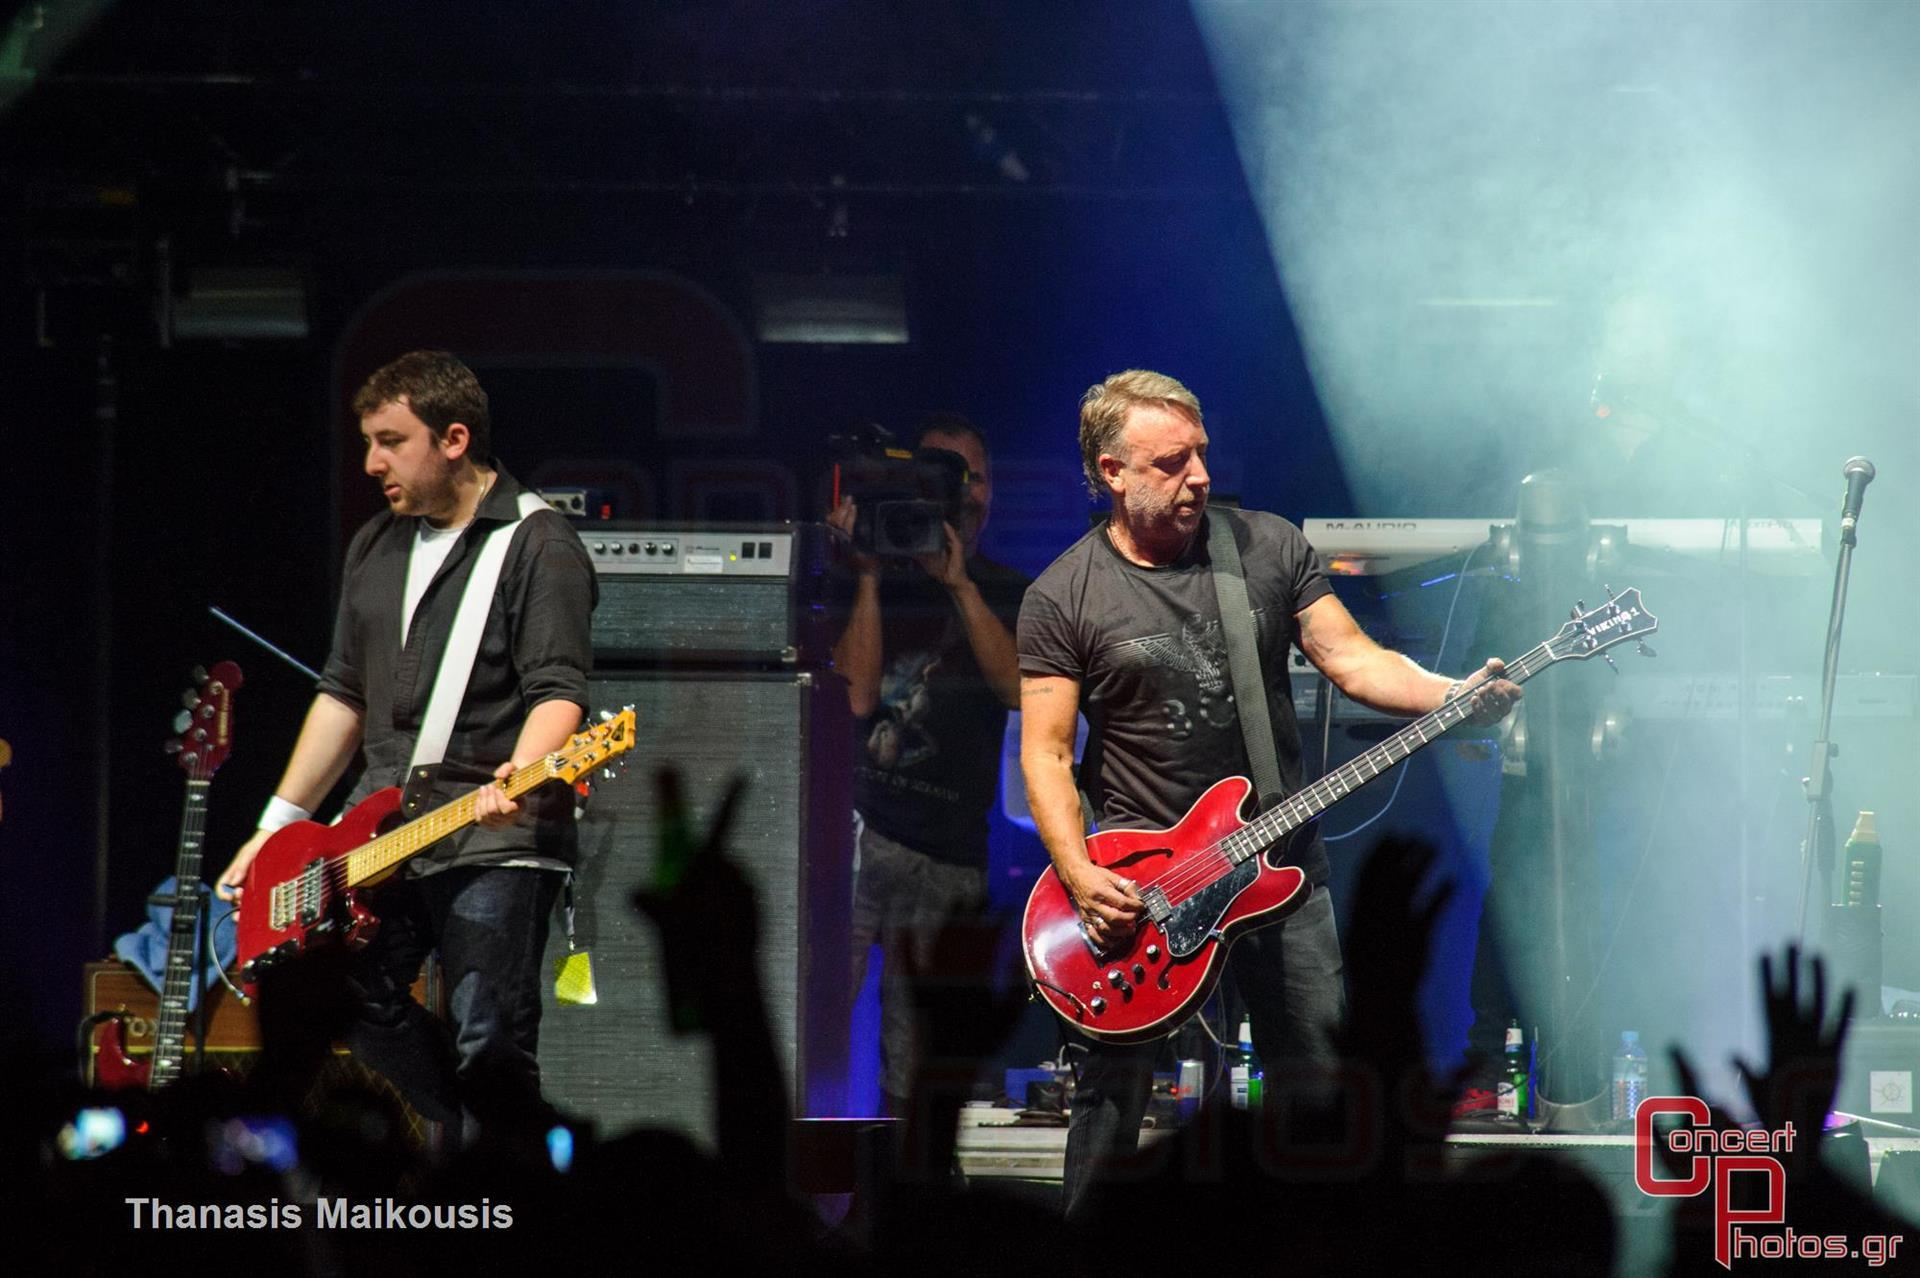 Peter Hook & The Light - photographer: Thanasis Maikousis - concertphotos_-9519